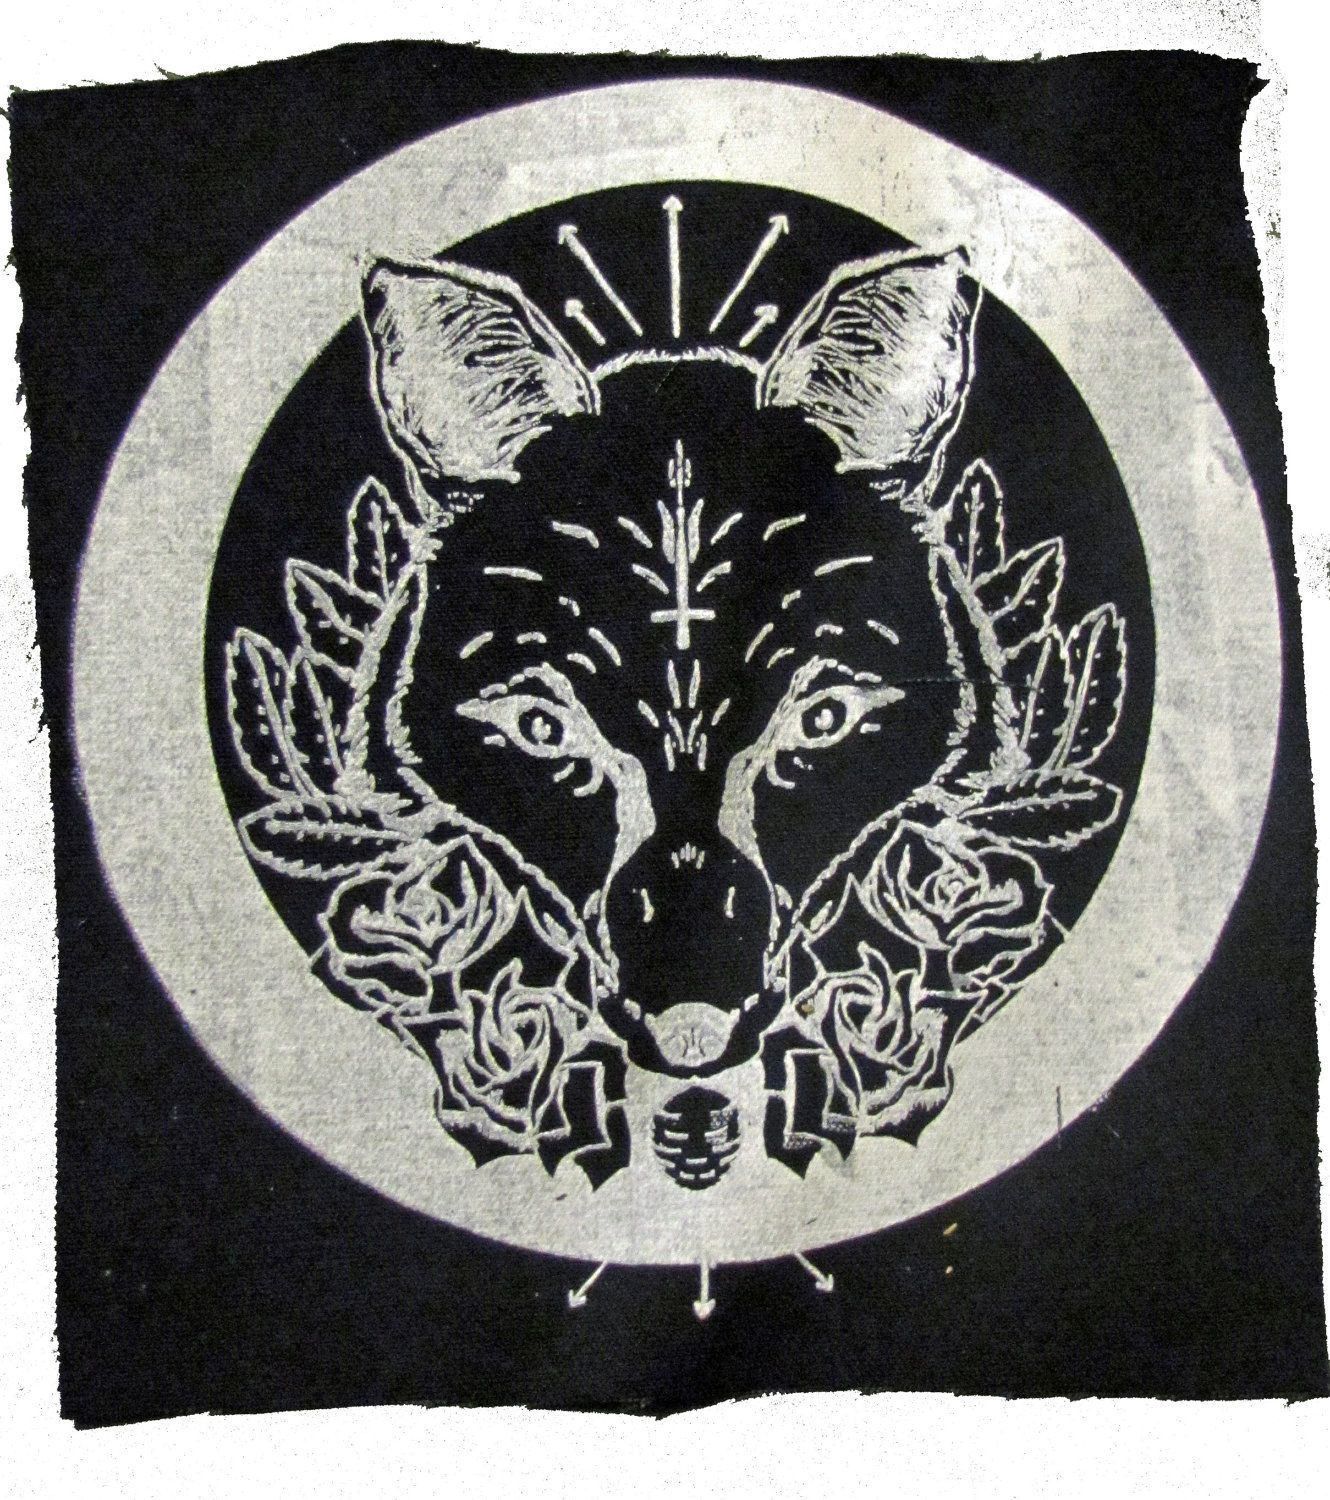 Fox backpatch witch flowers punk upside down cross metal punk fox backpatch witch flowers punk upside down cross metal 700 via etsy biocorpaavc Choice Image